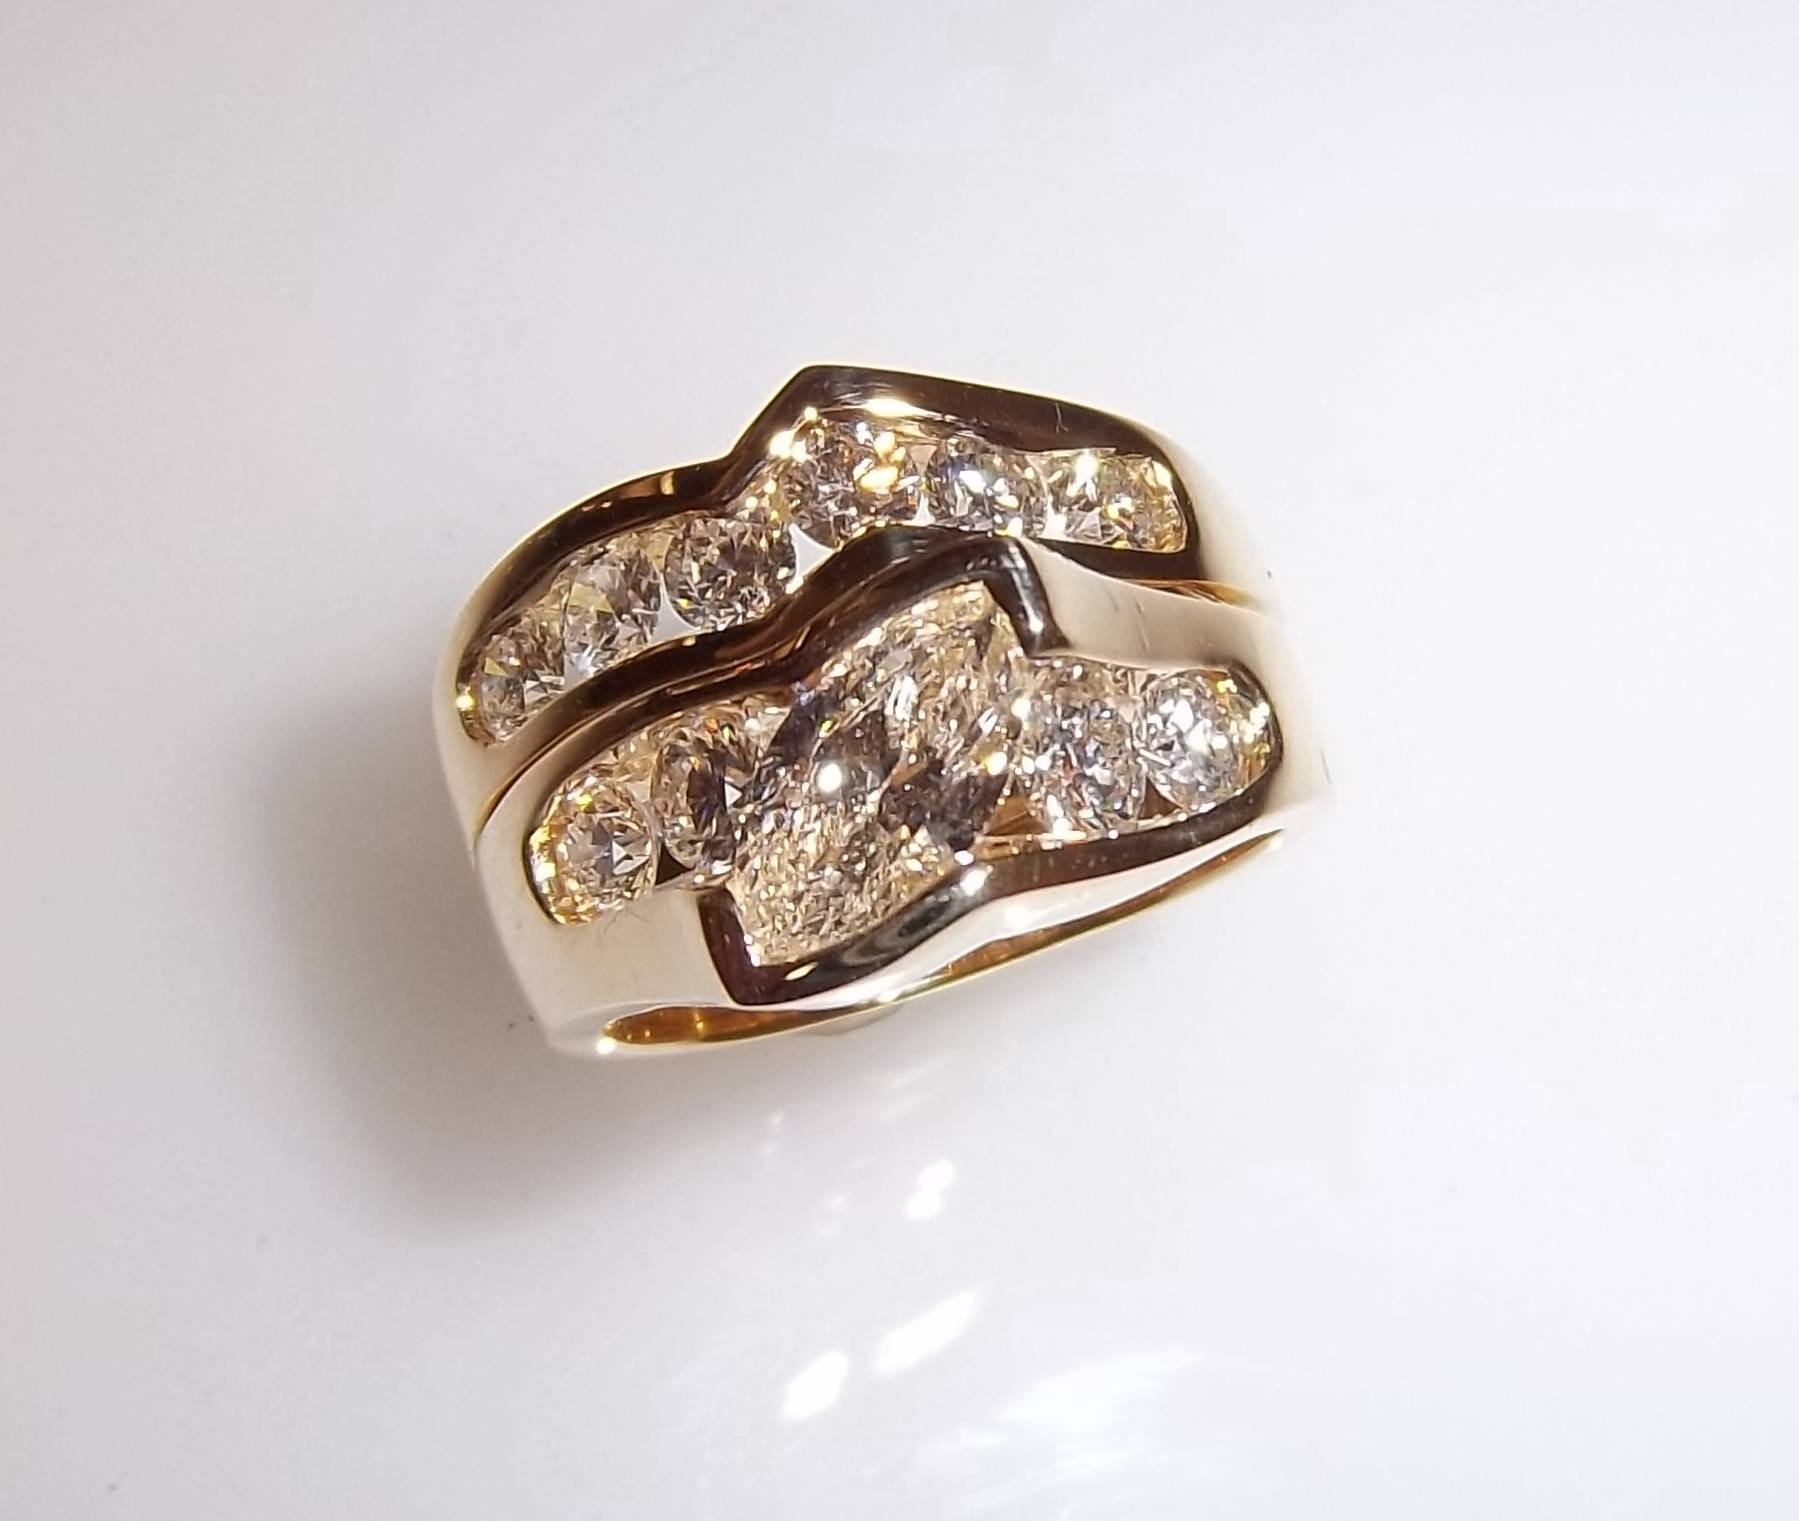 Wedding Anniversary Rings For Her | Wedding Ideas Pertaining To Most Popular 10 Year Anniversary Rings For Her (View 4 of 15)